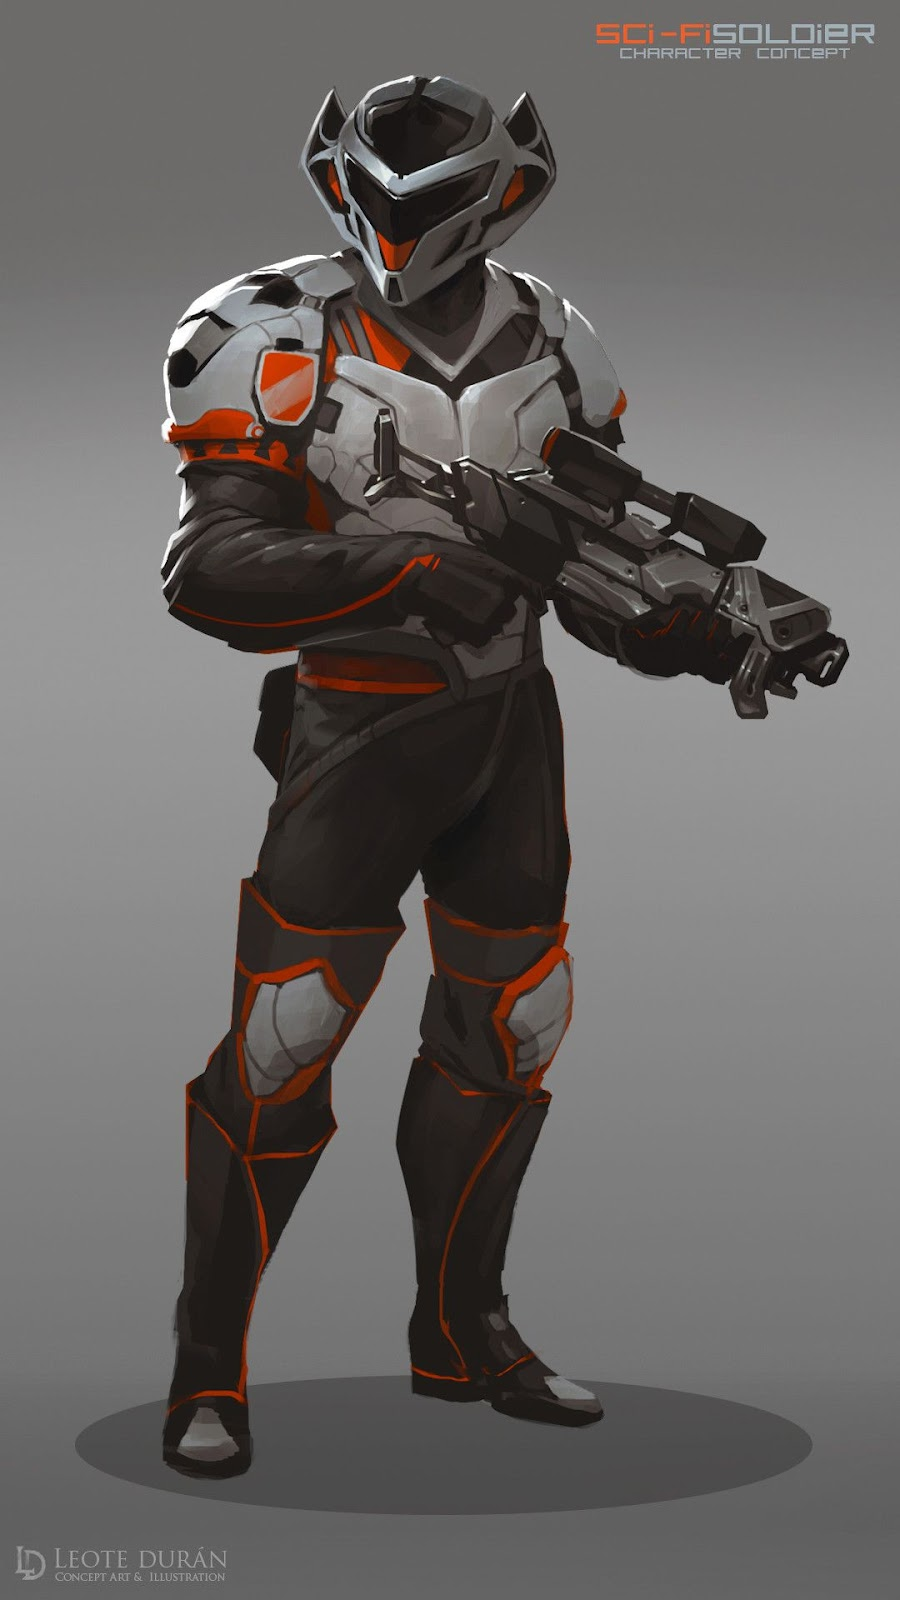 Image result for futuristic soldier concept art